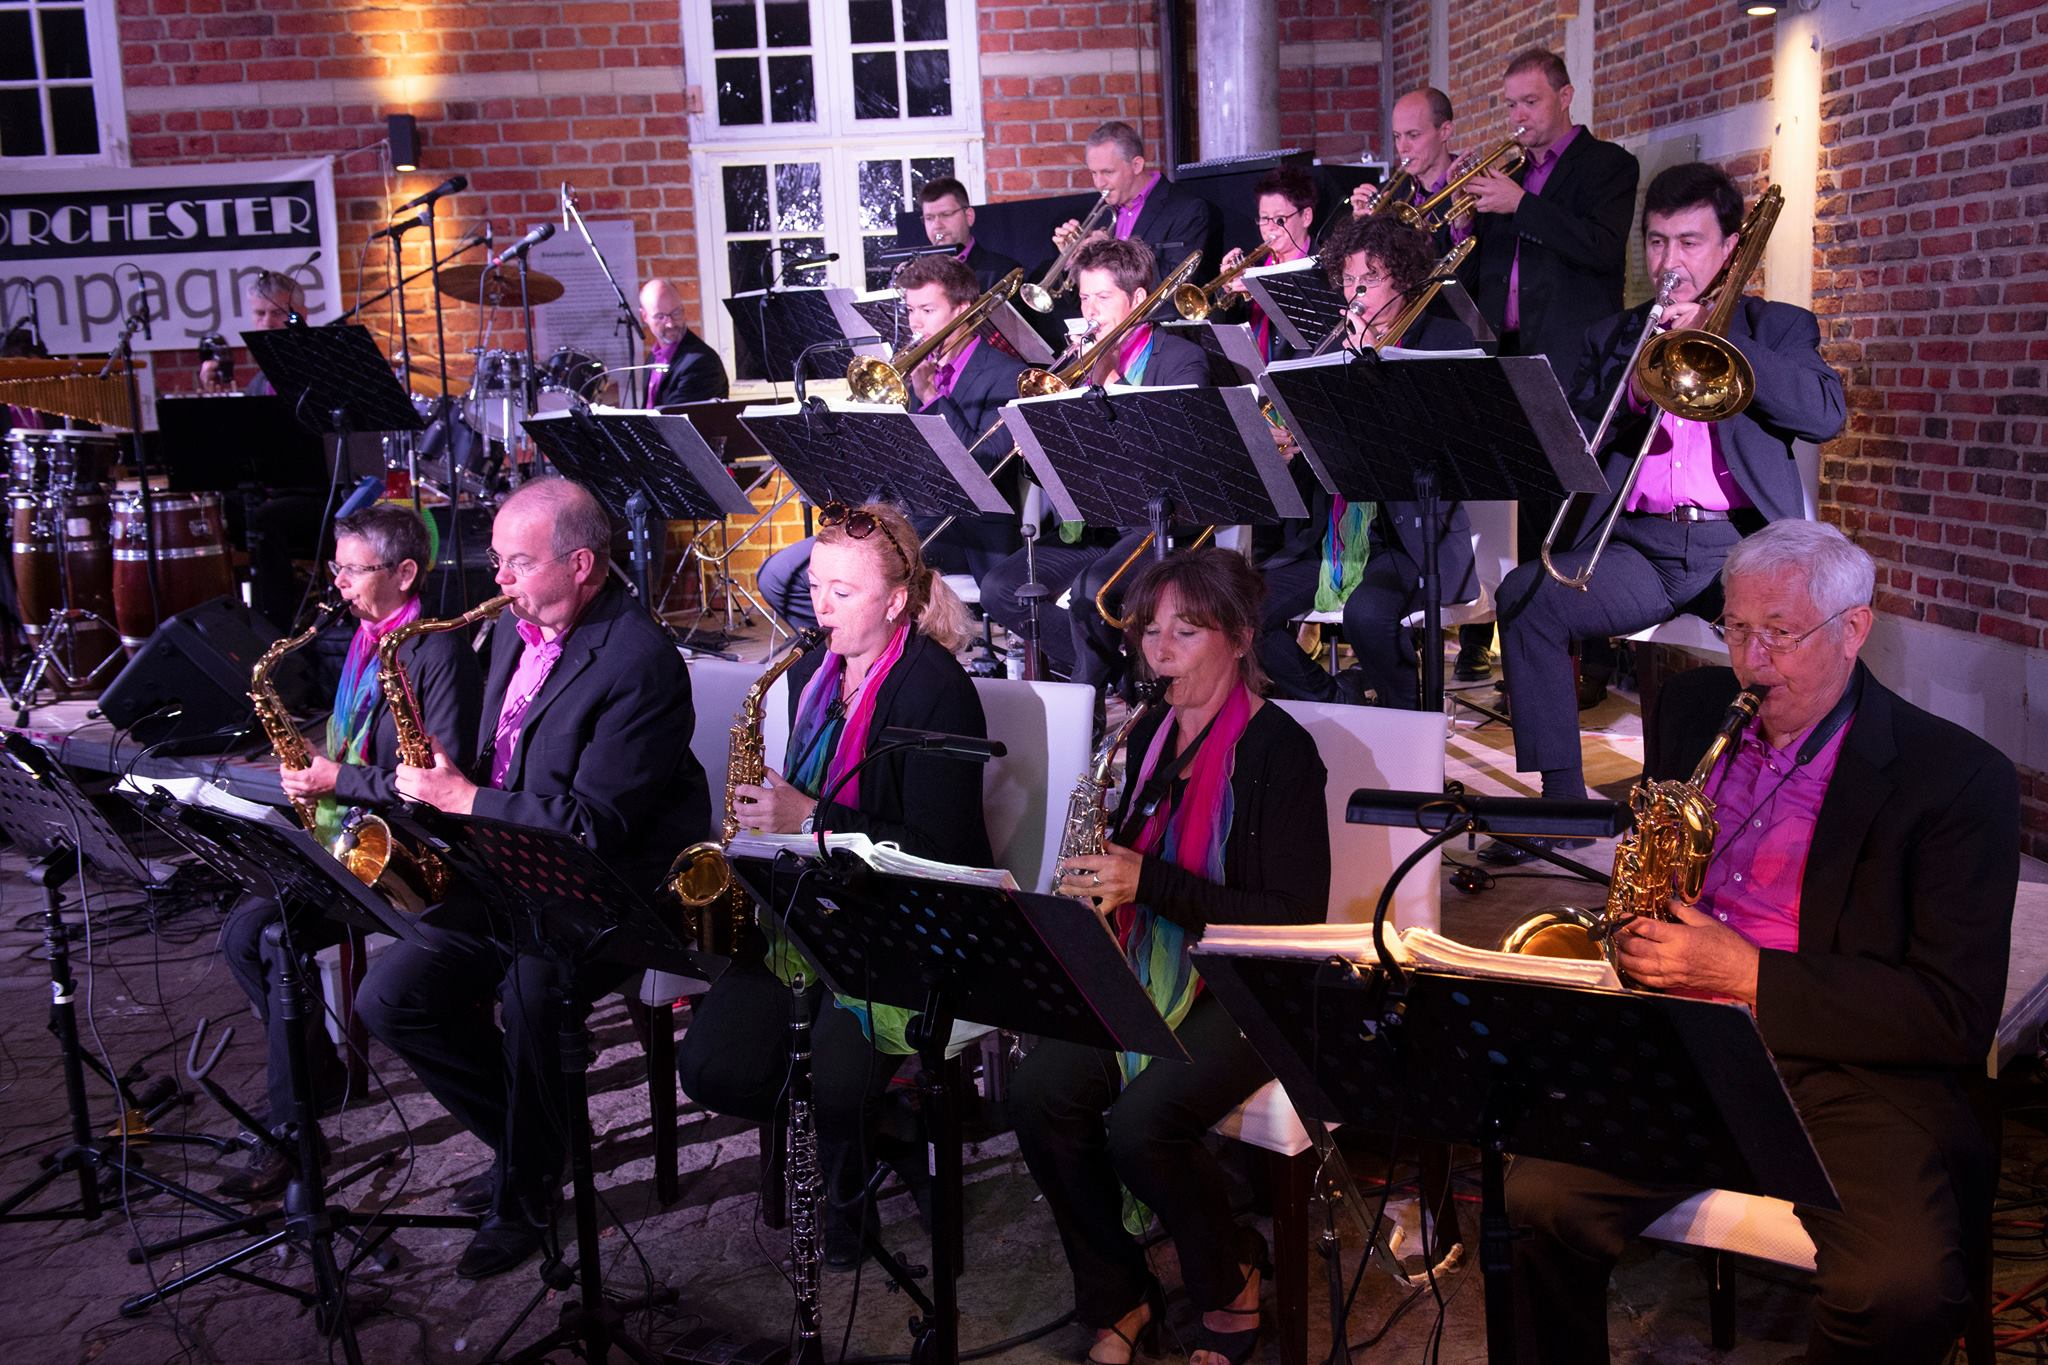 Preview: Orchester Champagne